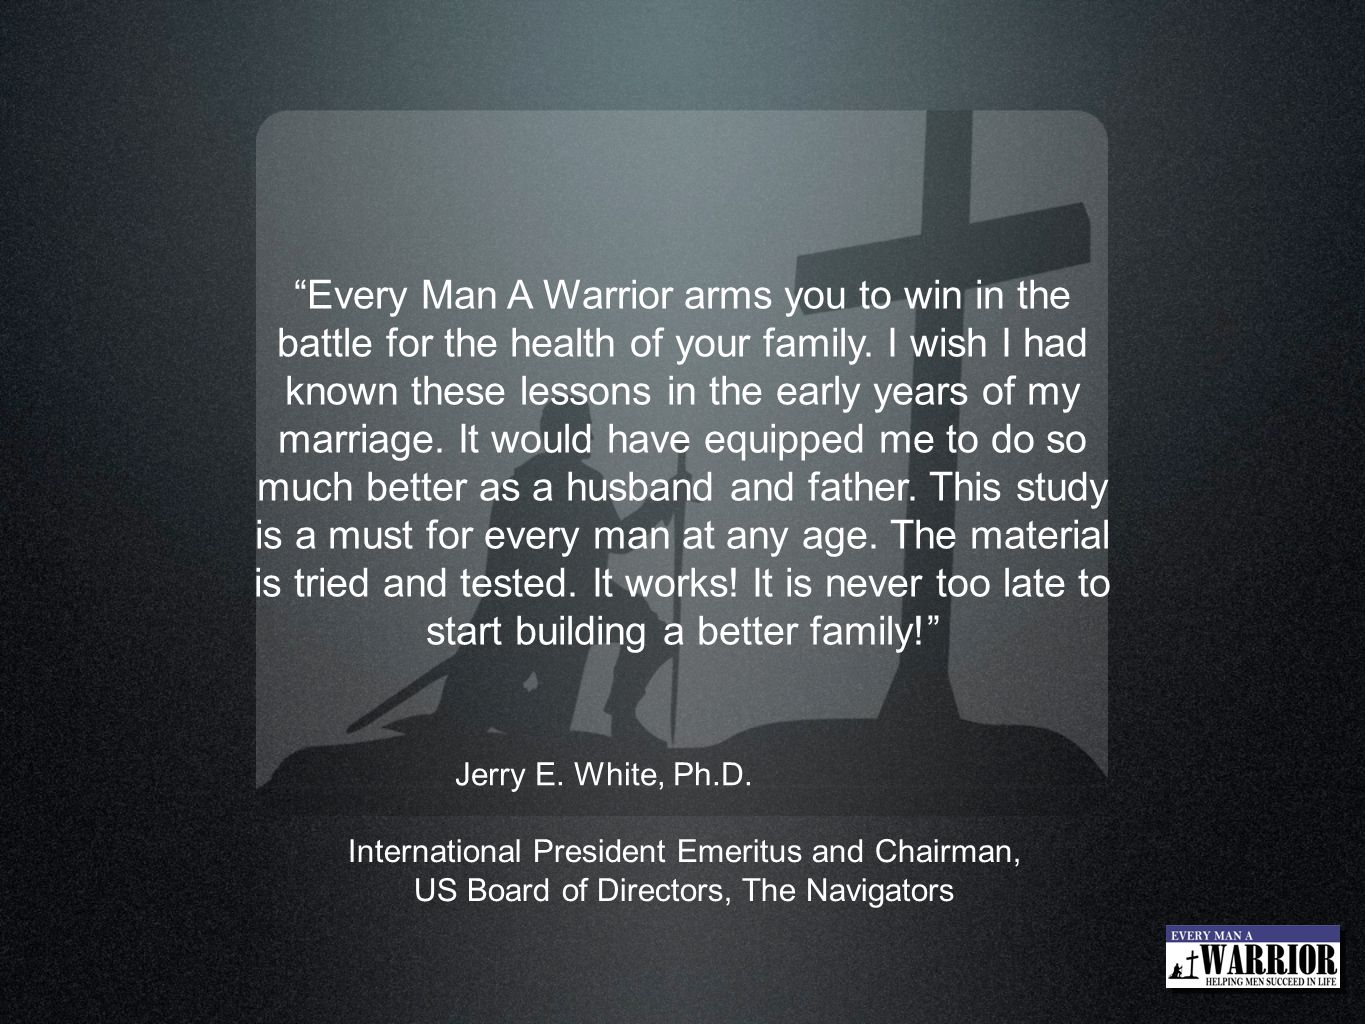 Every Man A Warrior arms you to win in the battle for the health of your family. I wish I had known these lessons in the early years of my marriage. It would have equipped me to do so much better as a husband and father. This study is a must for every man at any age. The material is tried and tested. It works! It is never too late to start building a better family!